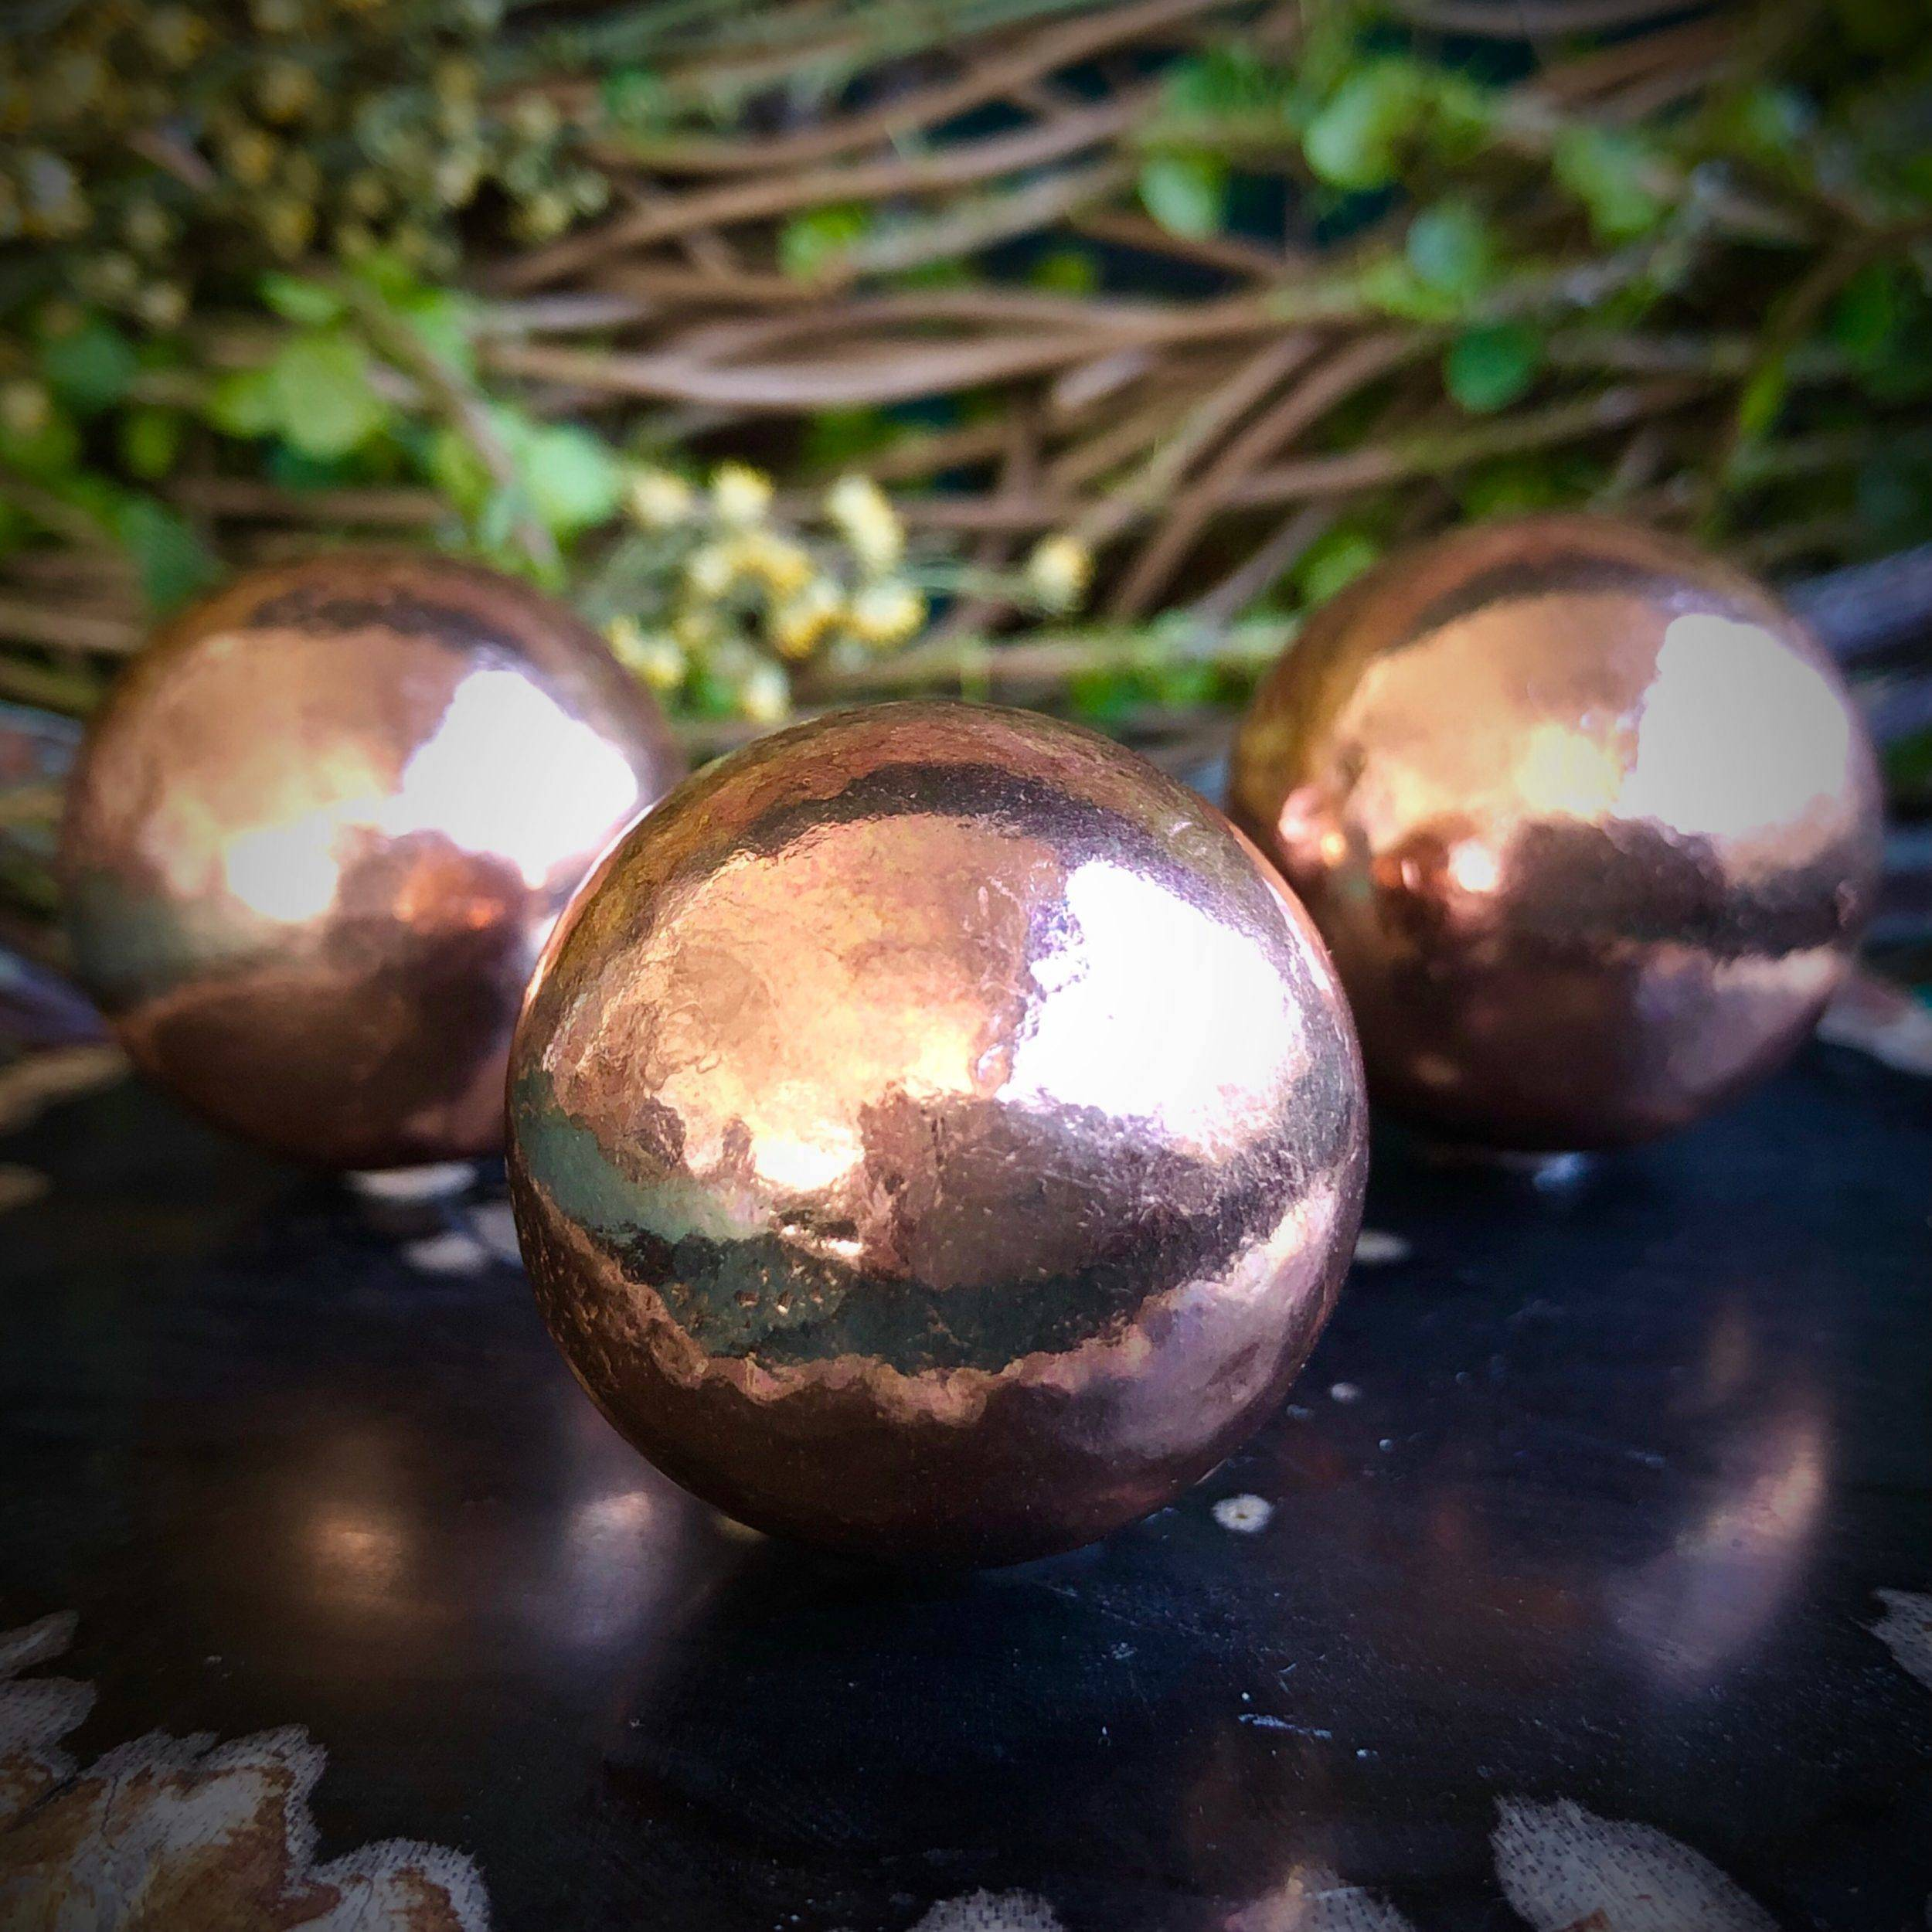 Copper_Sphere_DD_1of2_7_27